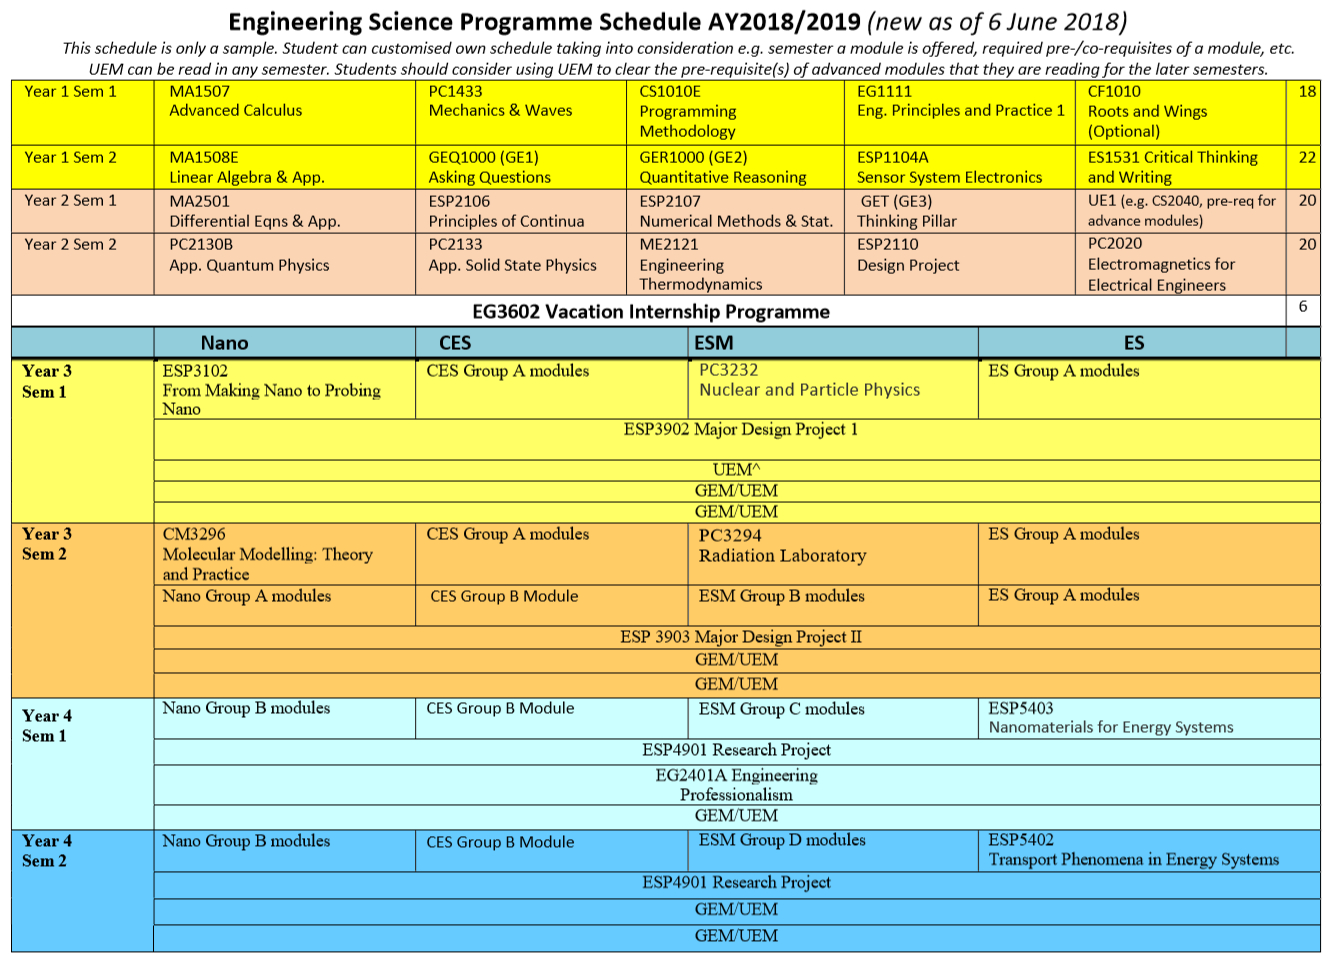 Recommended Semester Schedule – Engineering Science Programme Nus Academic Calendar 2019/20